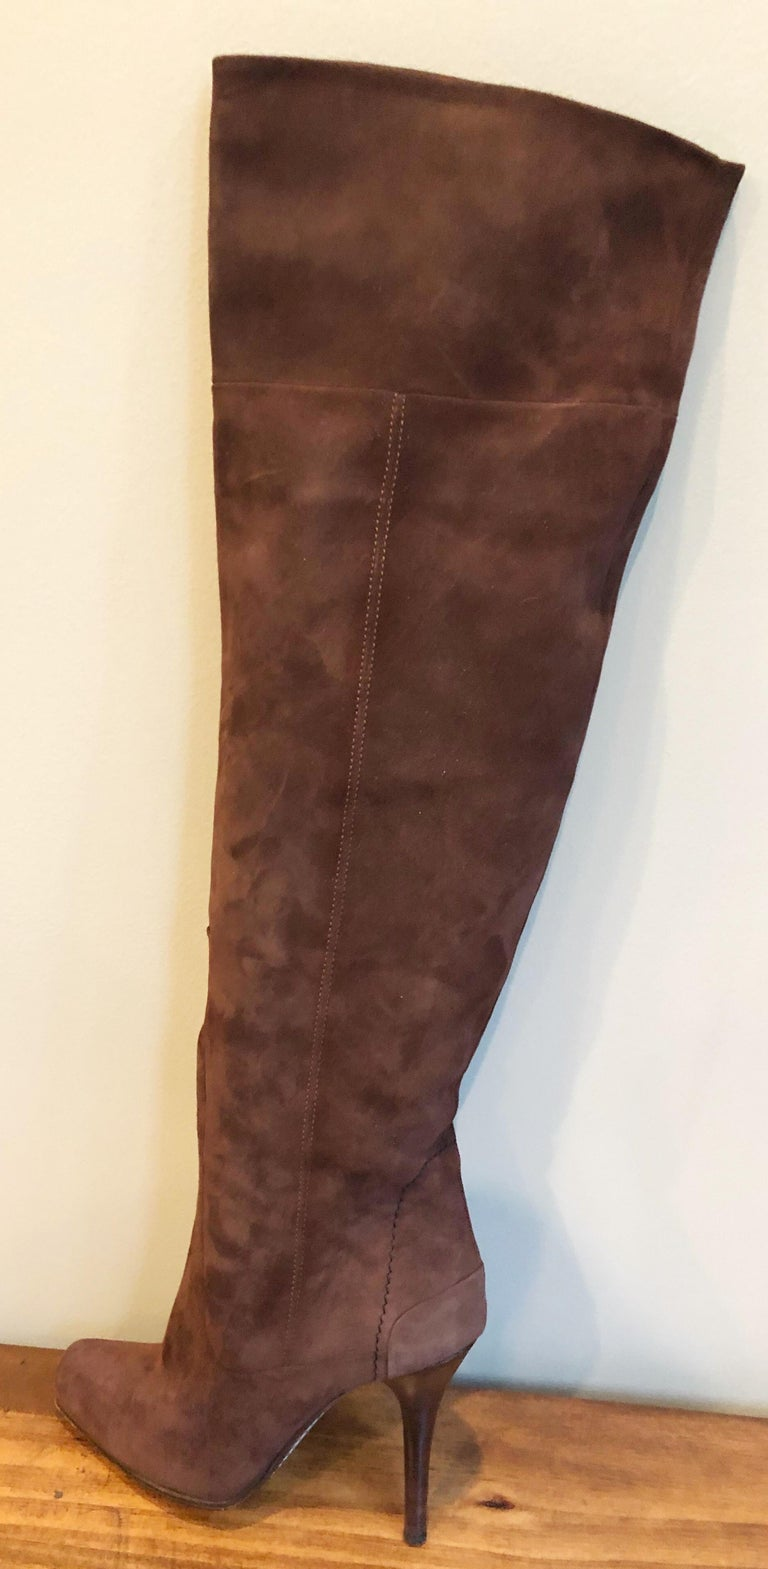 Chic and timeless early 2000s never worn COSTUME NATIONAL Size 36 / US 6 brown suede high heel boots ! The perfect brown color that goes with anything. Great with jeans, a skirt, a dress, or trosuers.  In great unworn condition Made in Italy Marked